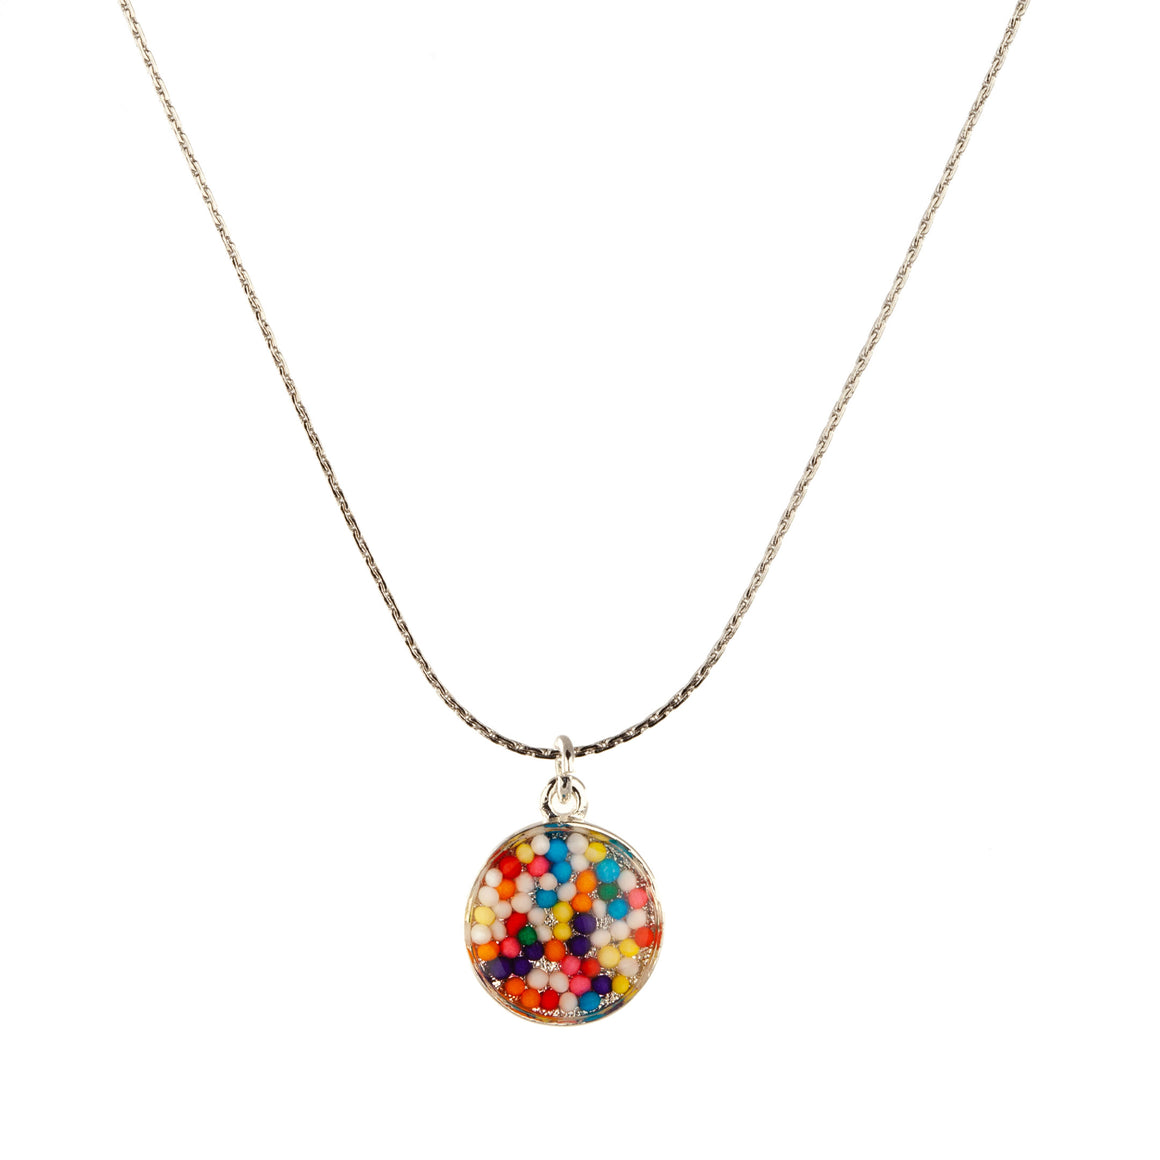 Sprinkles | Small Round Necklace